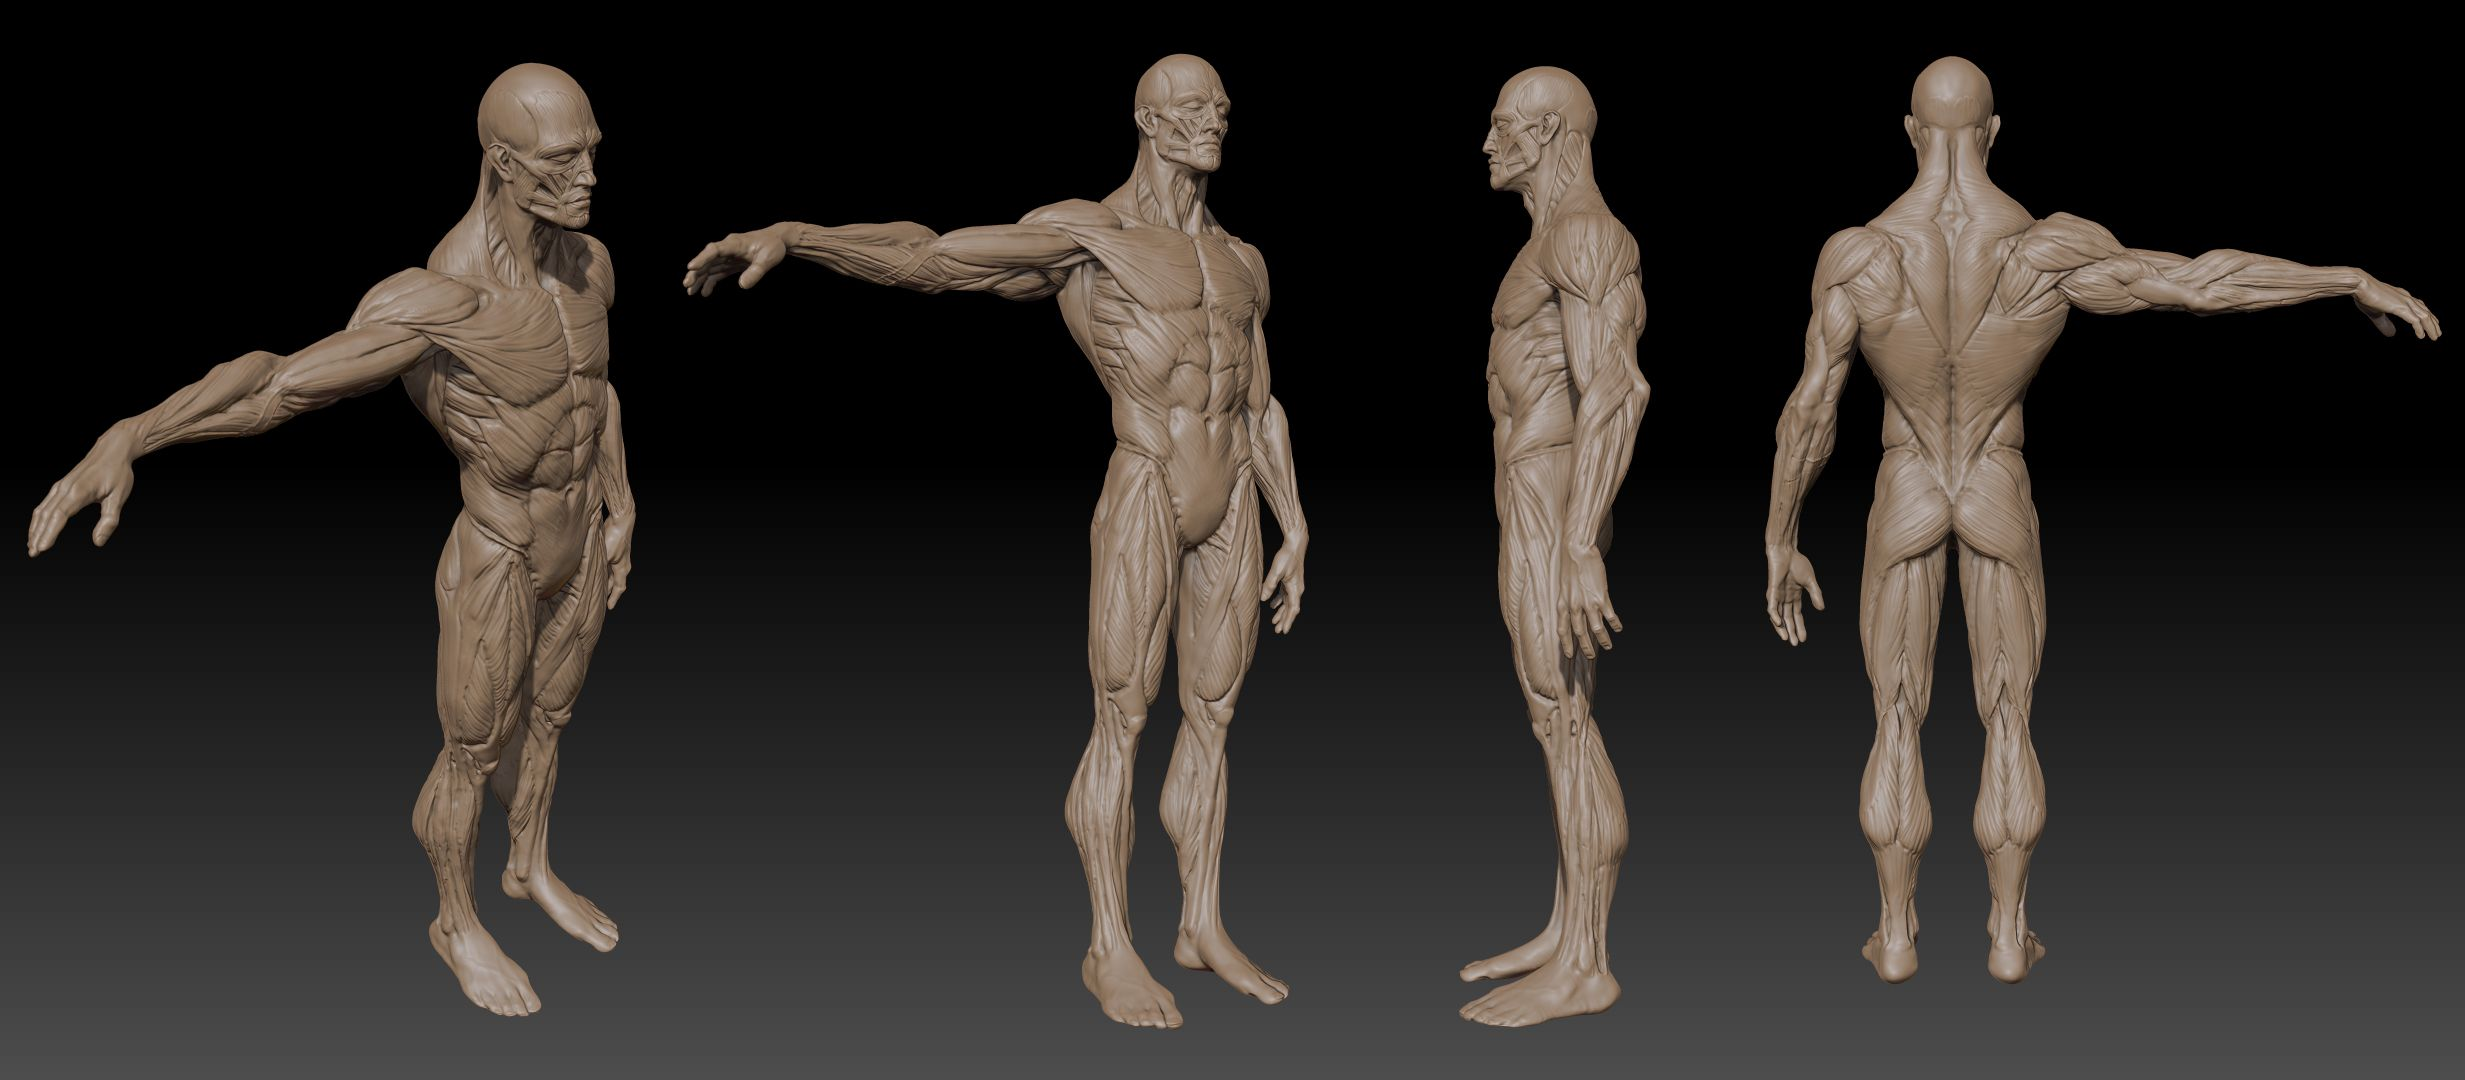 Pin by Carlos Quiros on Anatomy: 3D Artistic: Male | Pinterest ...